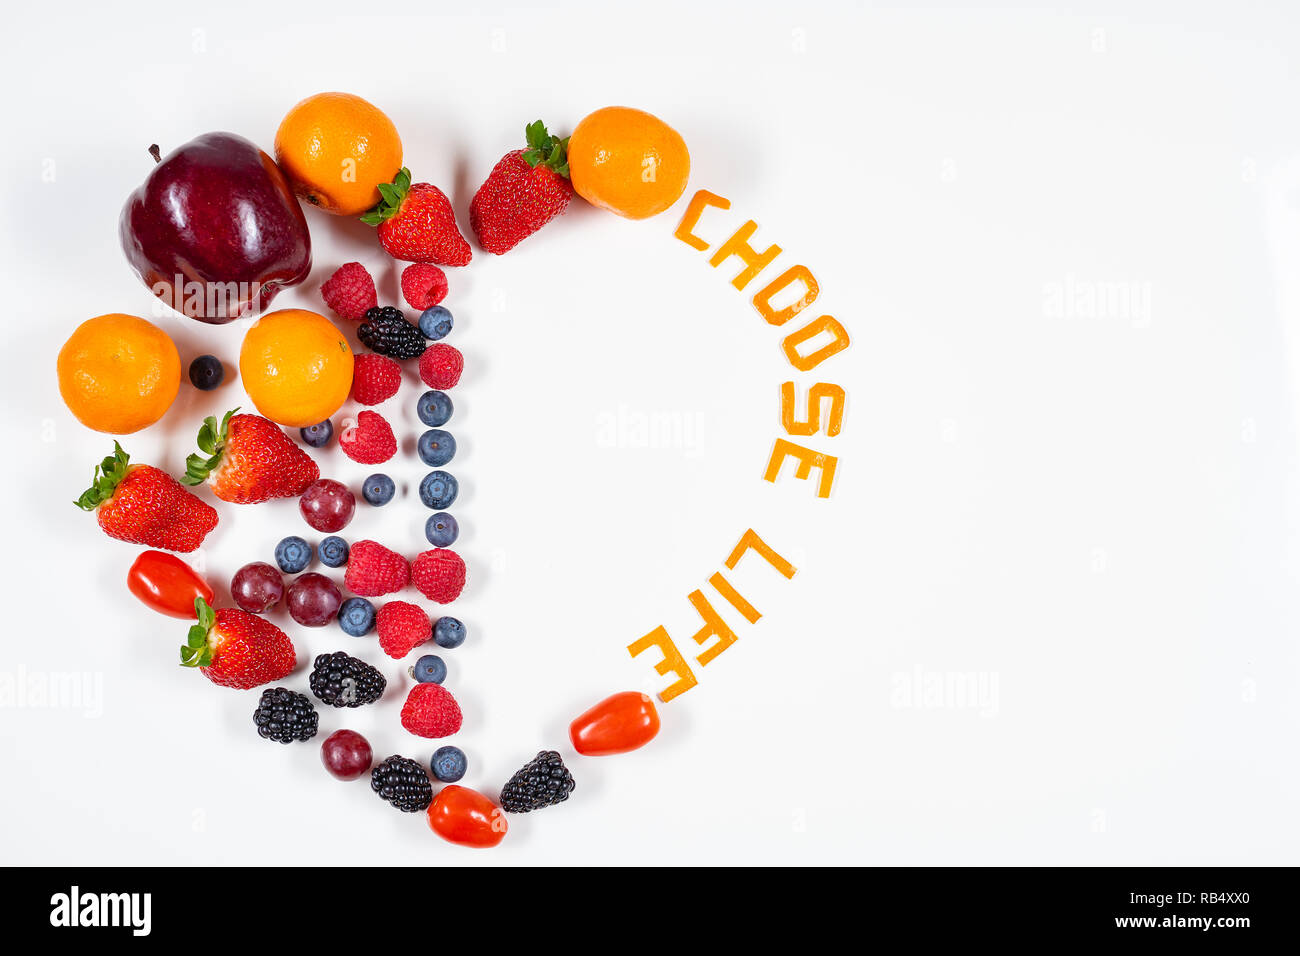 Heart shaped fruit arrangement using a various types of fruit with a message reading Choose Life made out of tangerine peels. - Stock Image